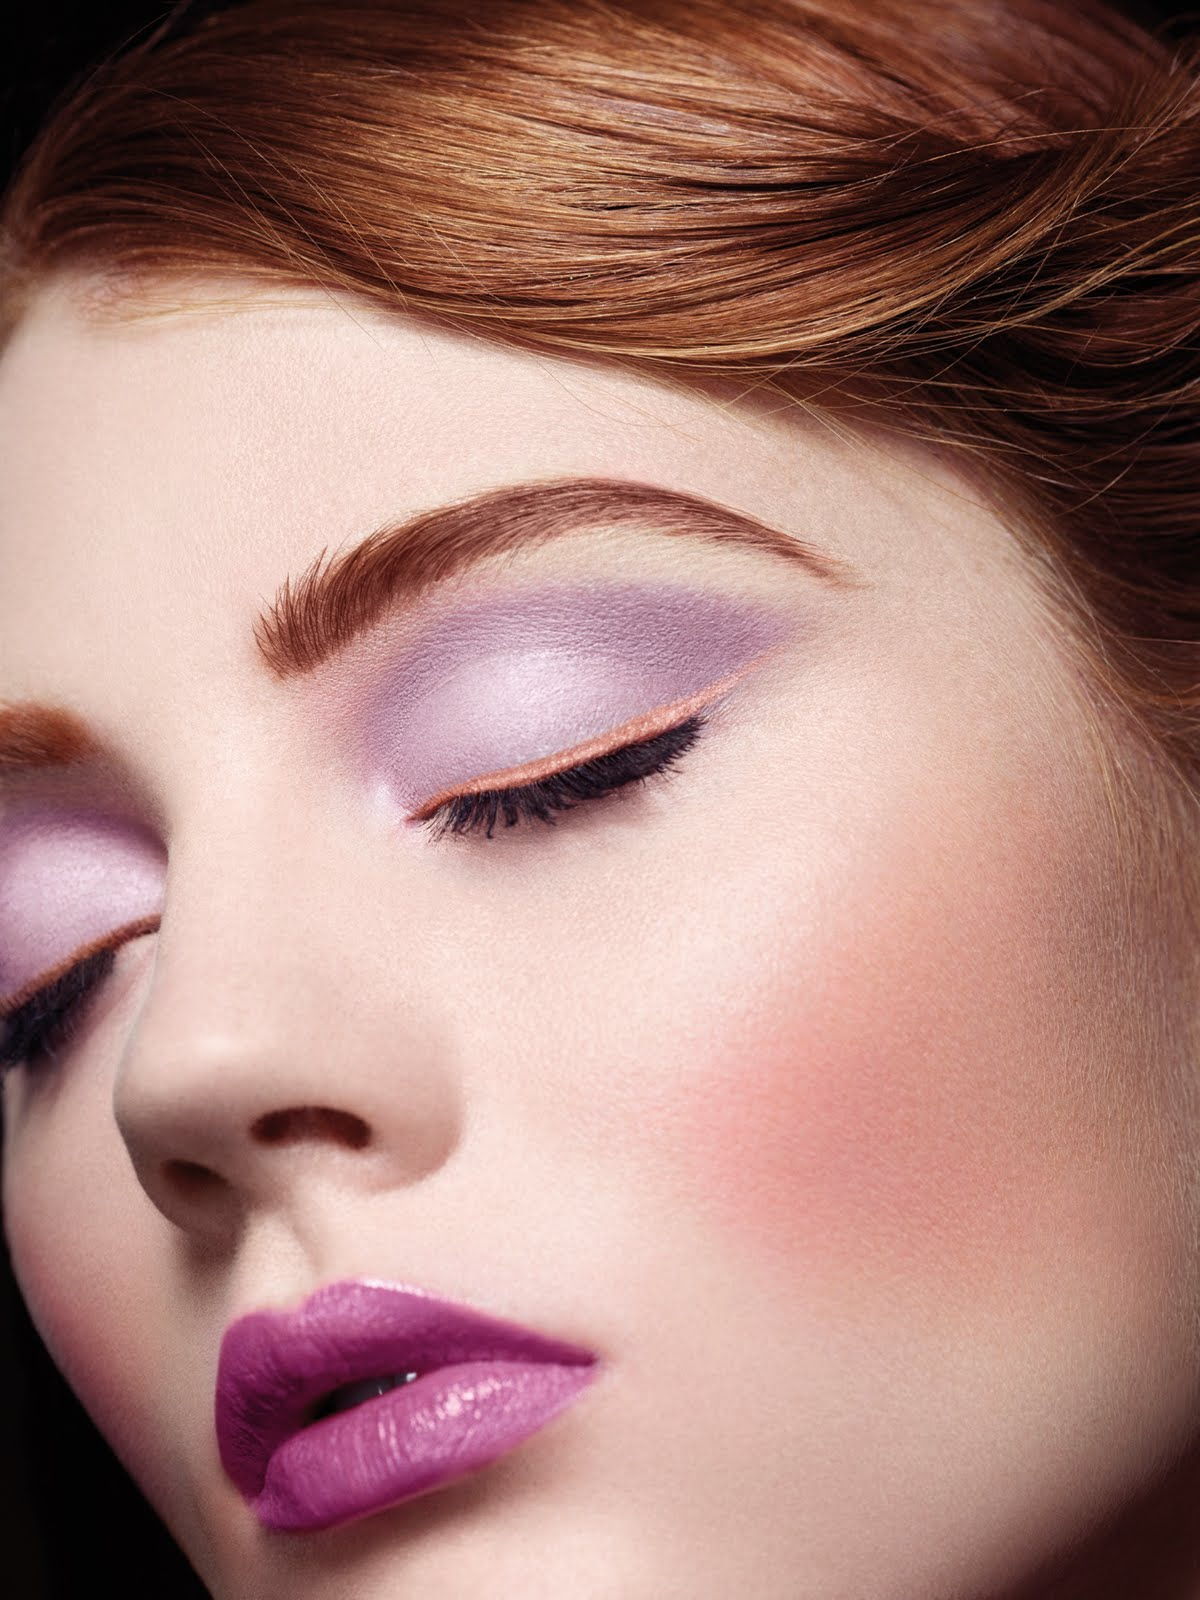 Glossicious by sarah pakistani beauty blogreviewsmakeup tips i was an immediate convert and take tremendous pride in introducing this to the market david horne illamasqua director of product development baditri Image collections